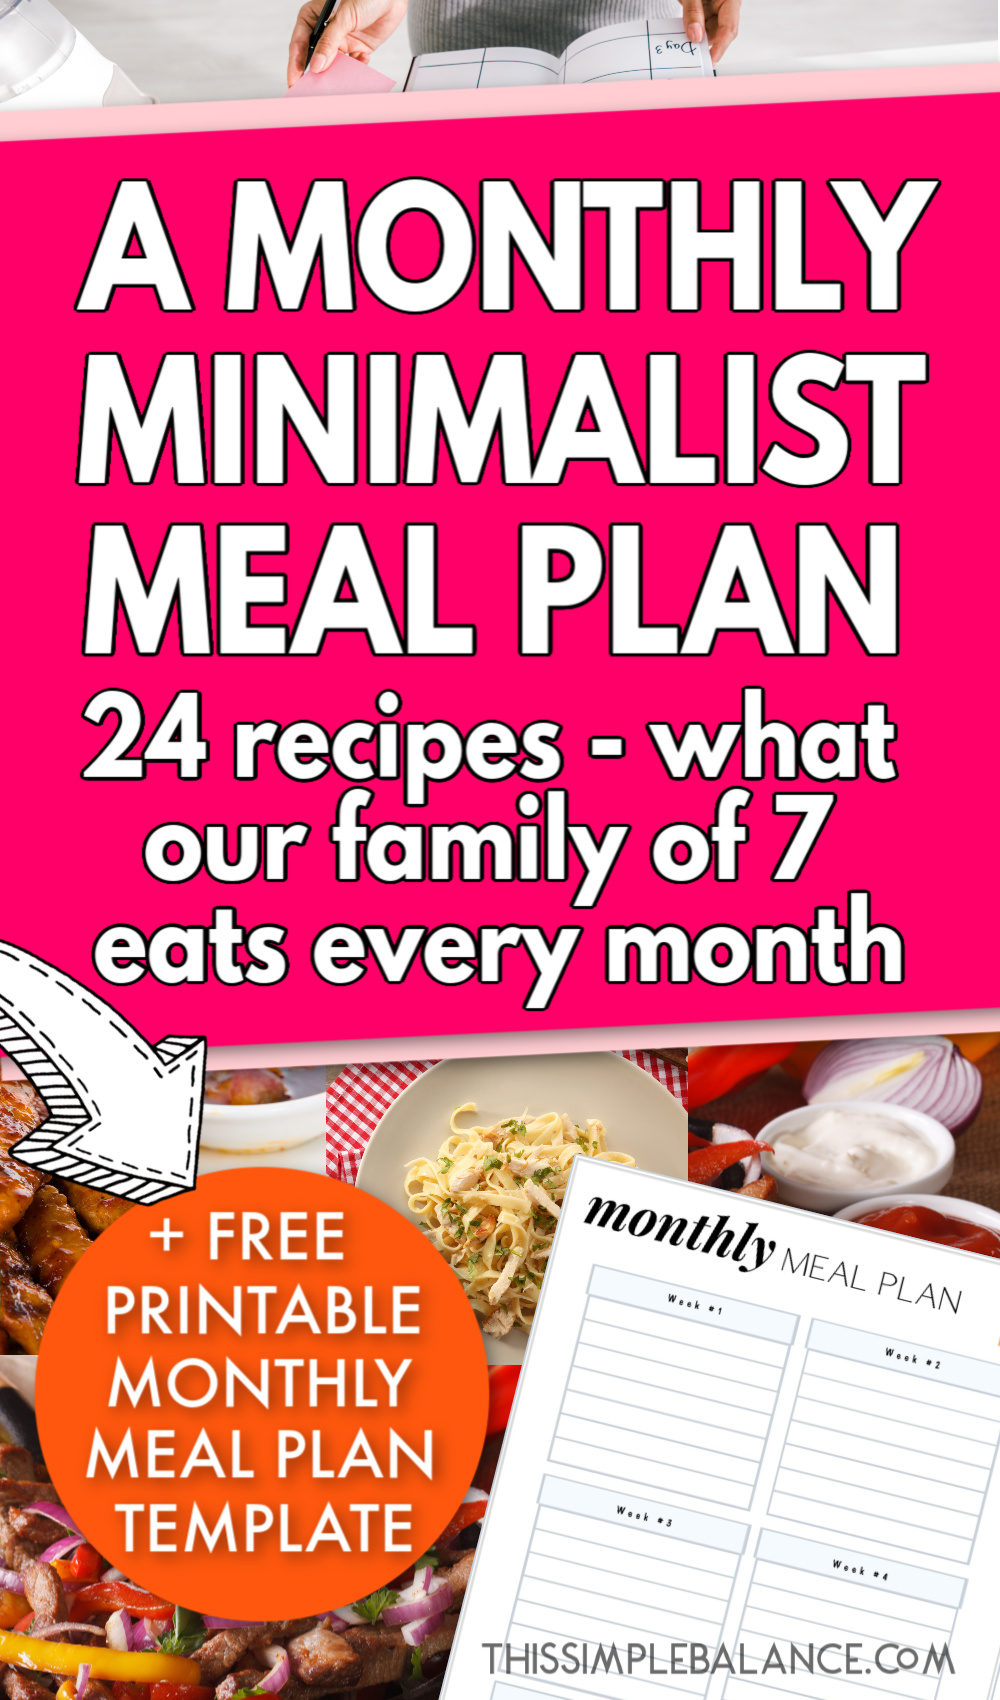 "pictures of dinners with text overlay ""A Monthly Minimalist Meal Plan + free meal planning printable"""